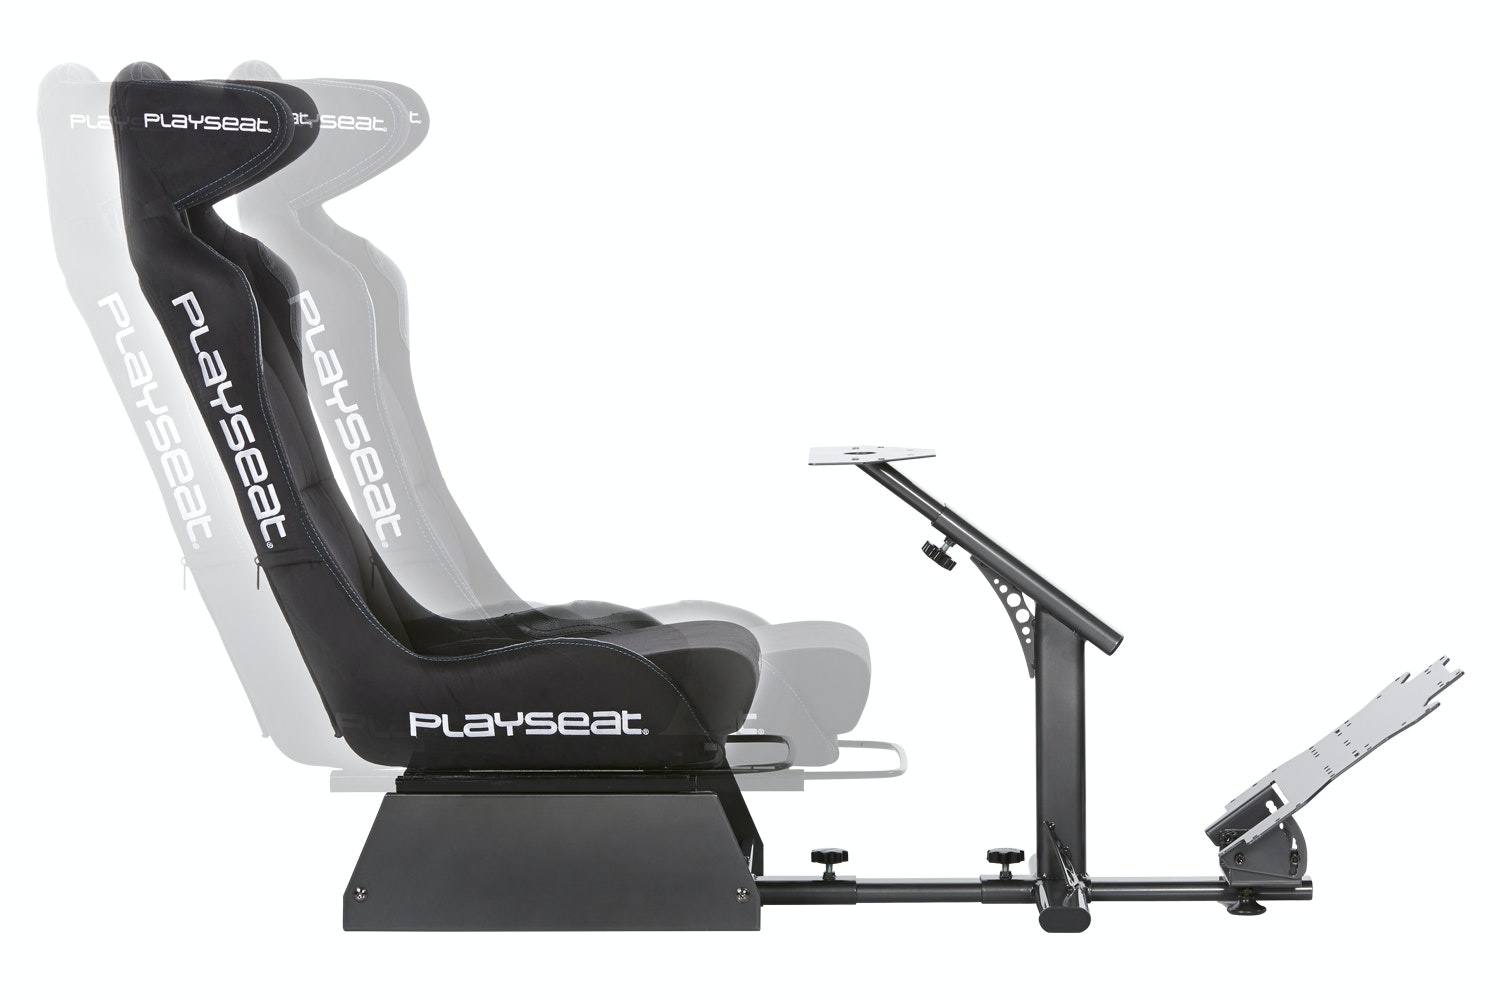 Playseat Seat Slider For Gaming Chair